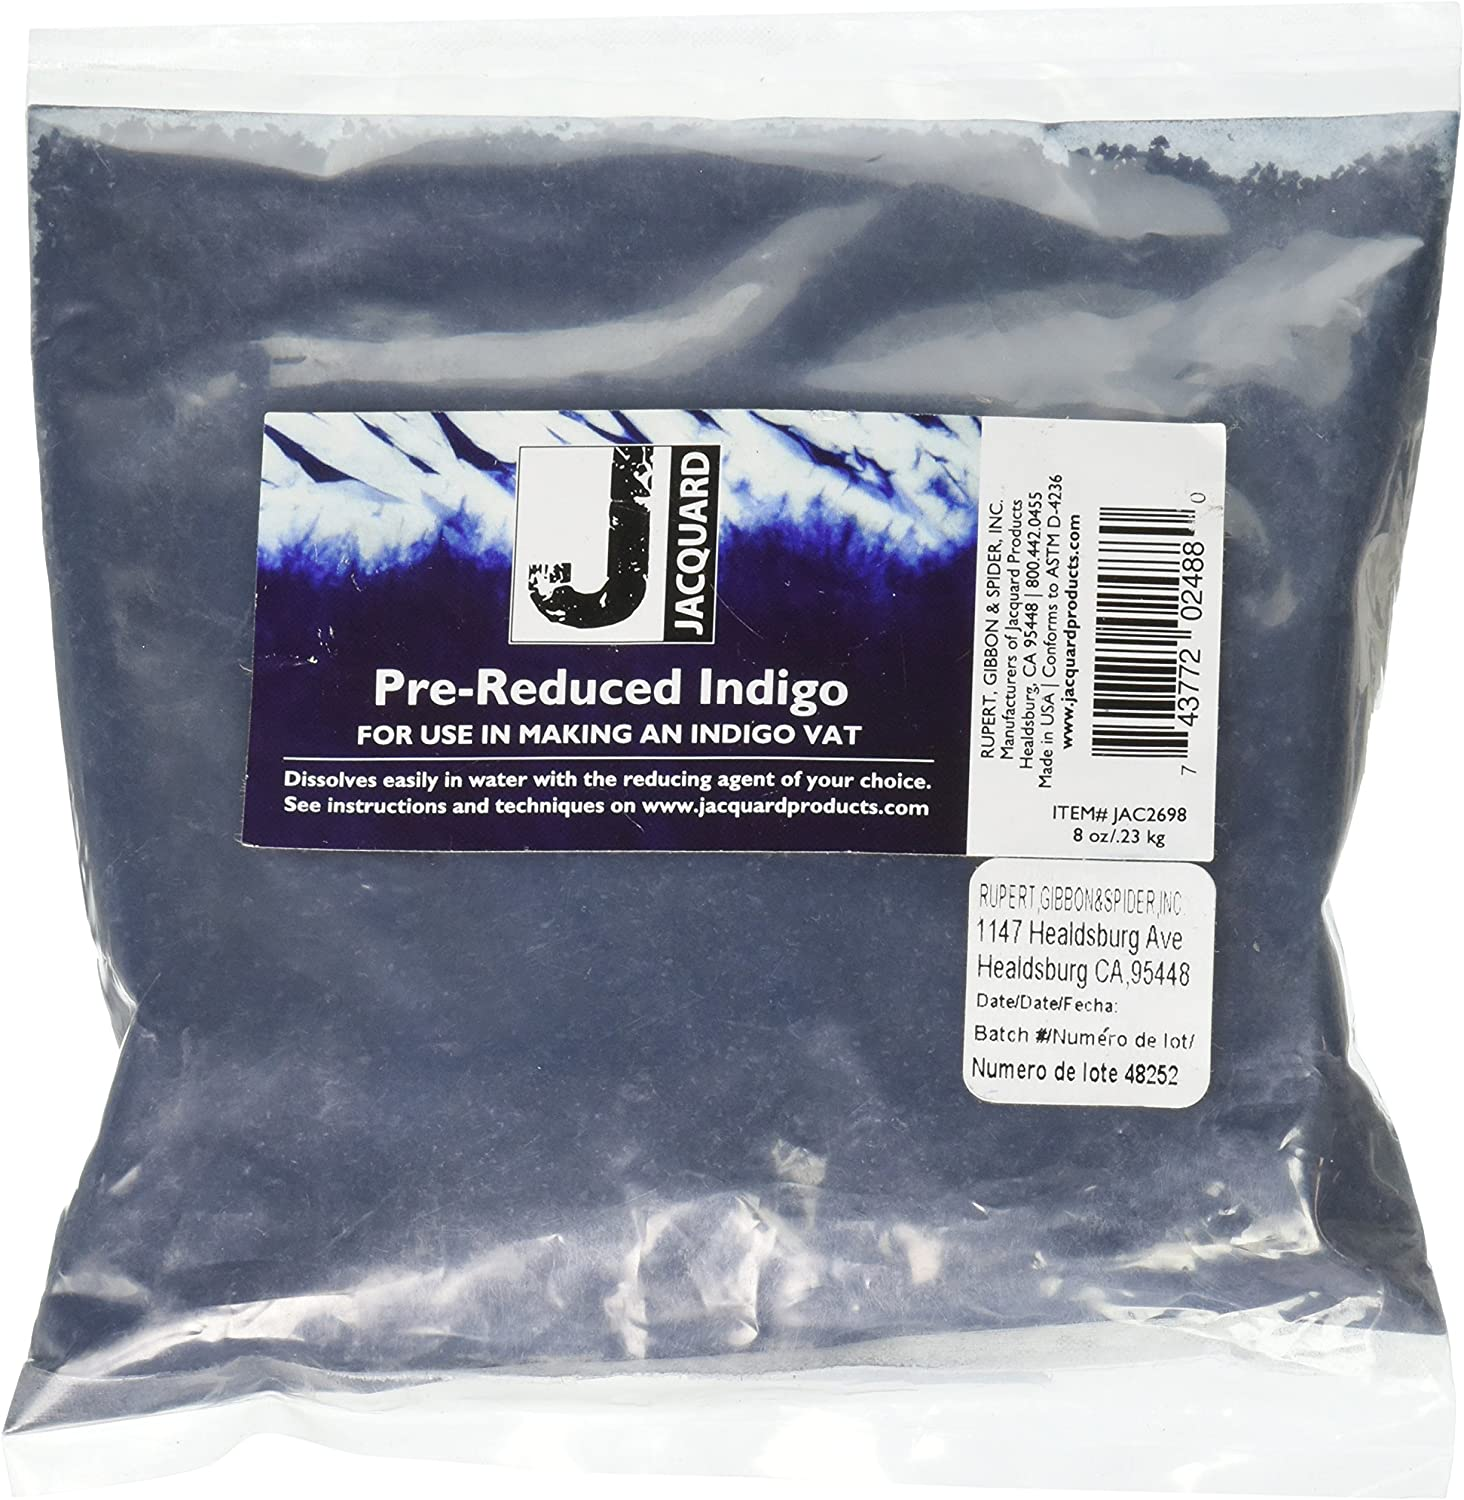 Pack of 2 8-Ounce Indigo Jacquard Products Jacquard Pre